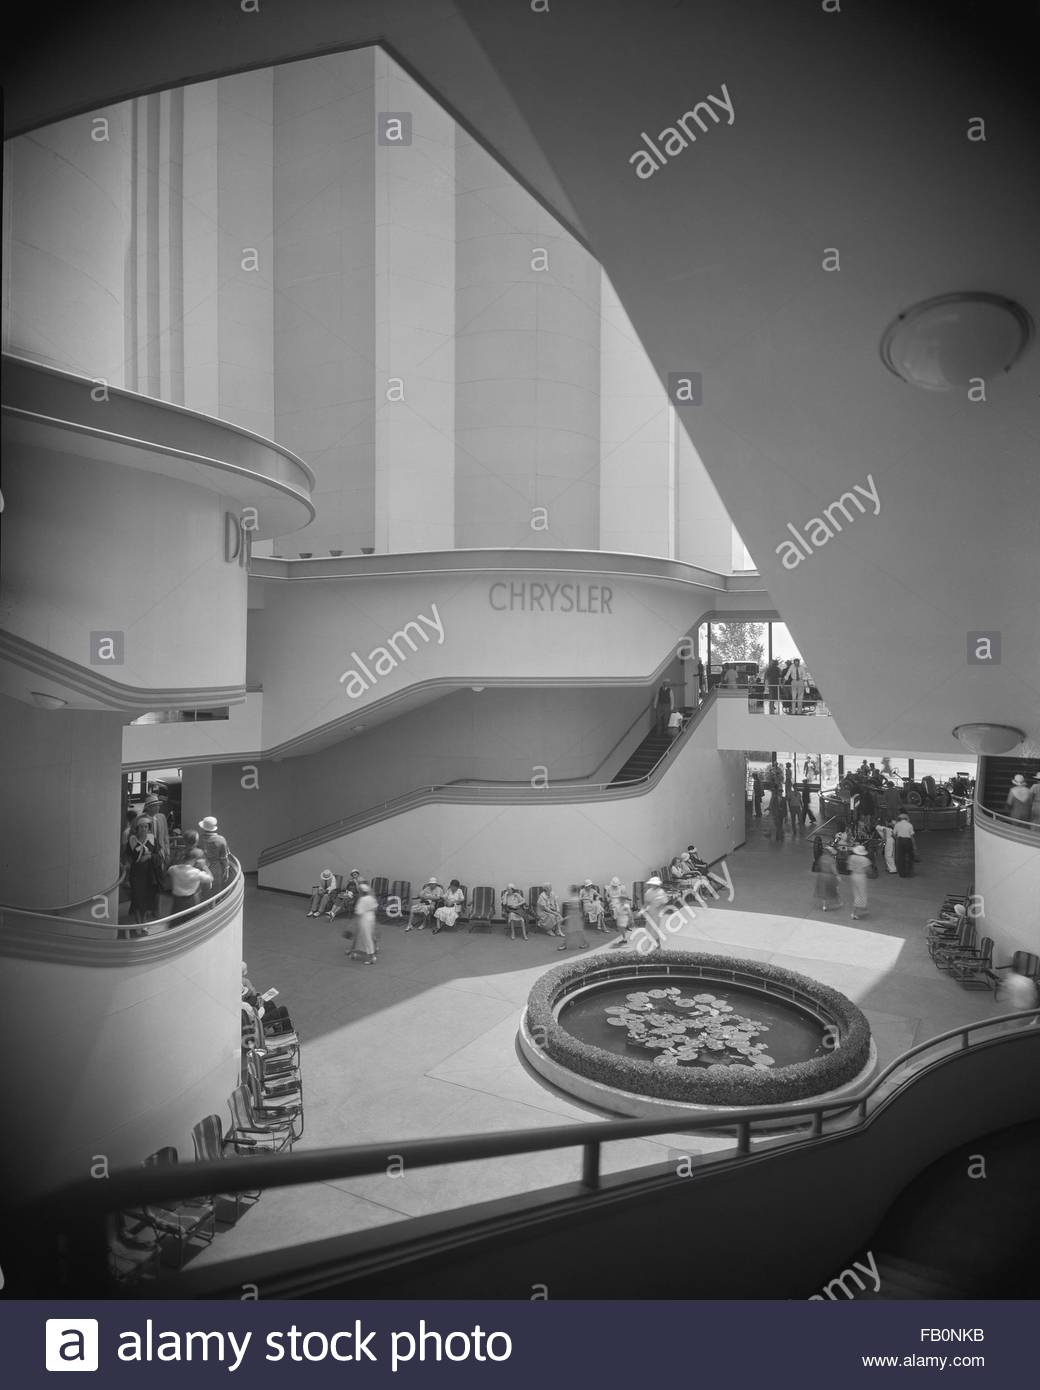 Interior of Chrysler building lobby with people passing through, wide view. Chrysler Motors building at Century - Stock Image